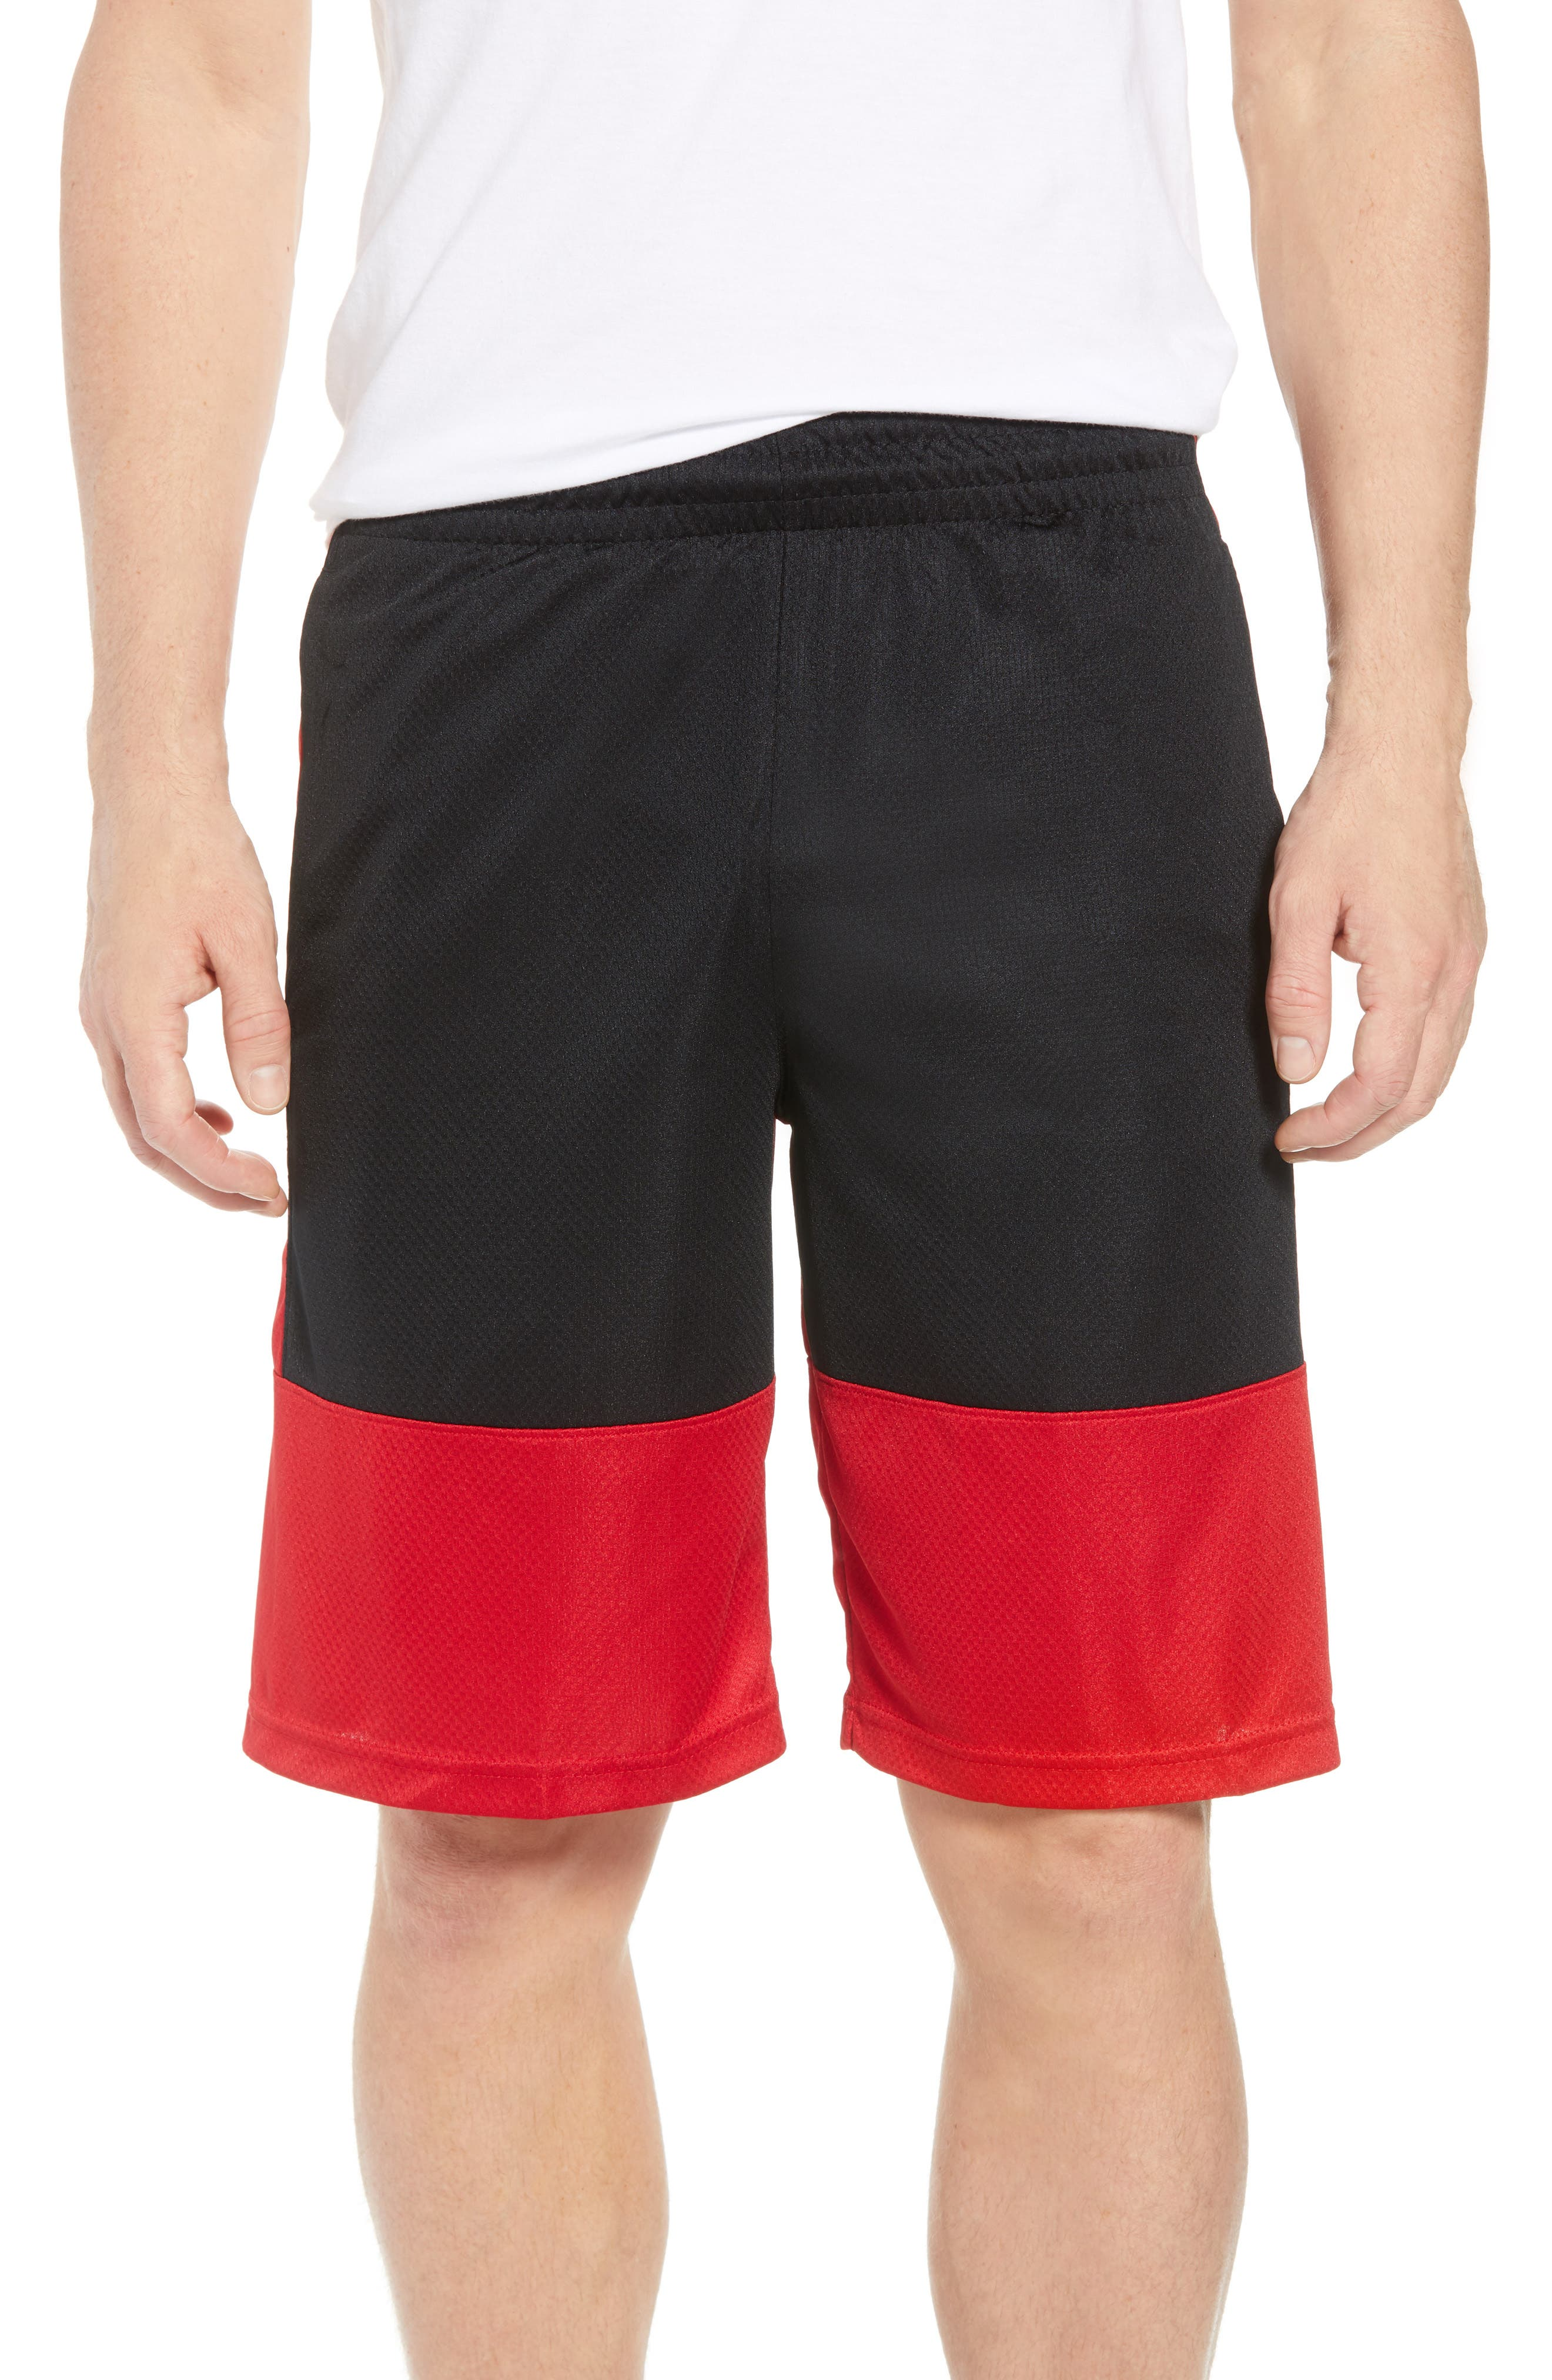 Rise Shorts,                         Main,                         color, Gym Red/ Black/ Black